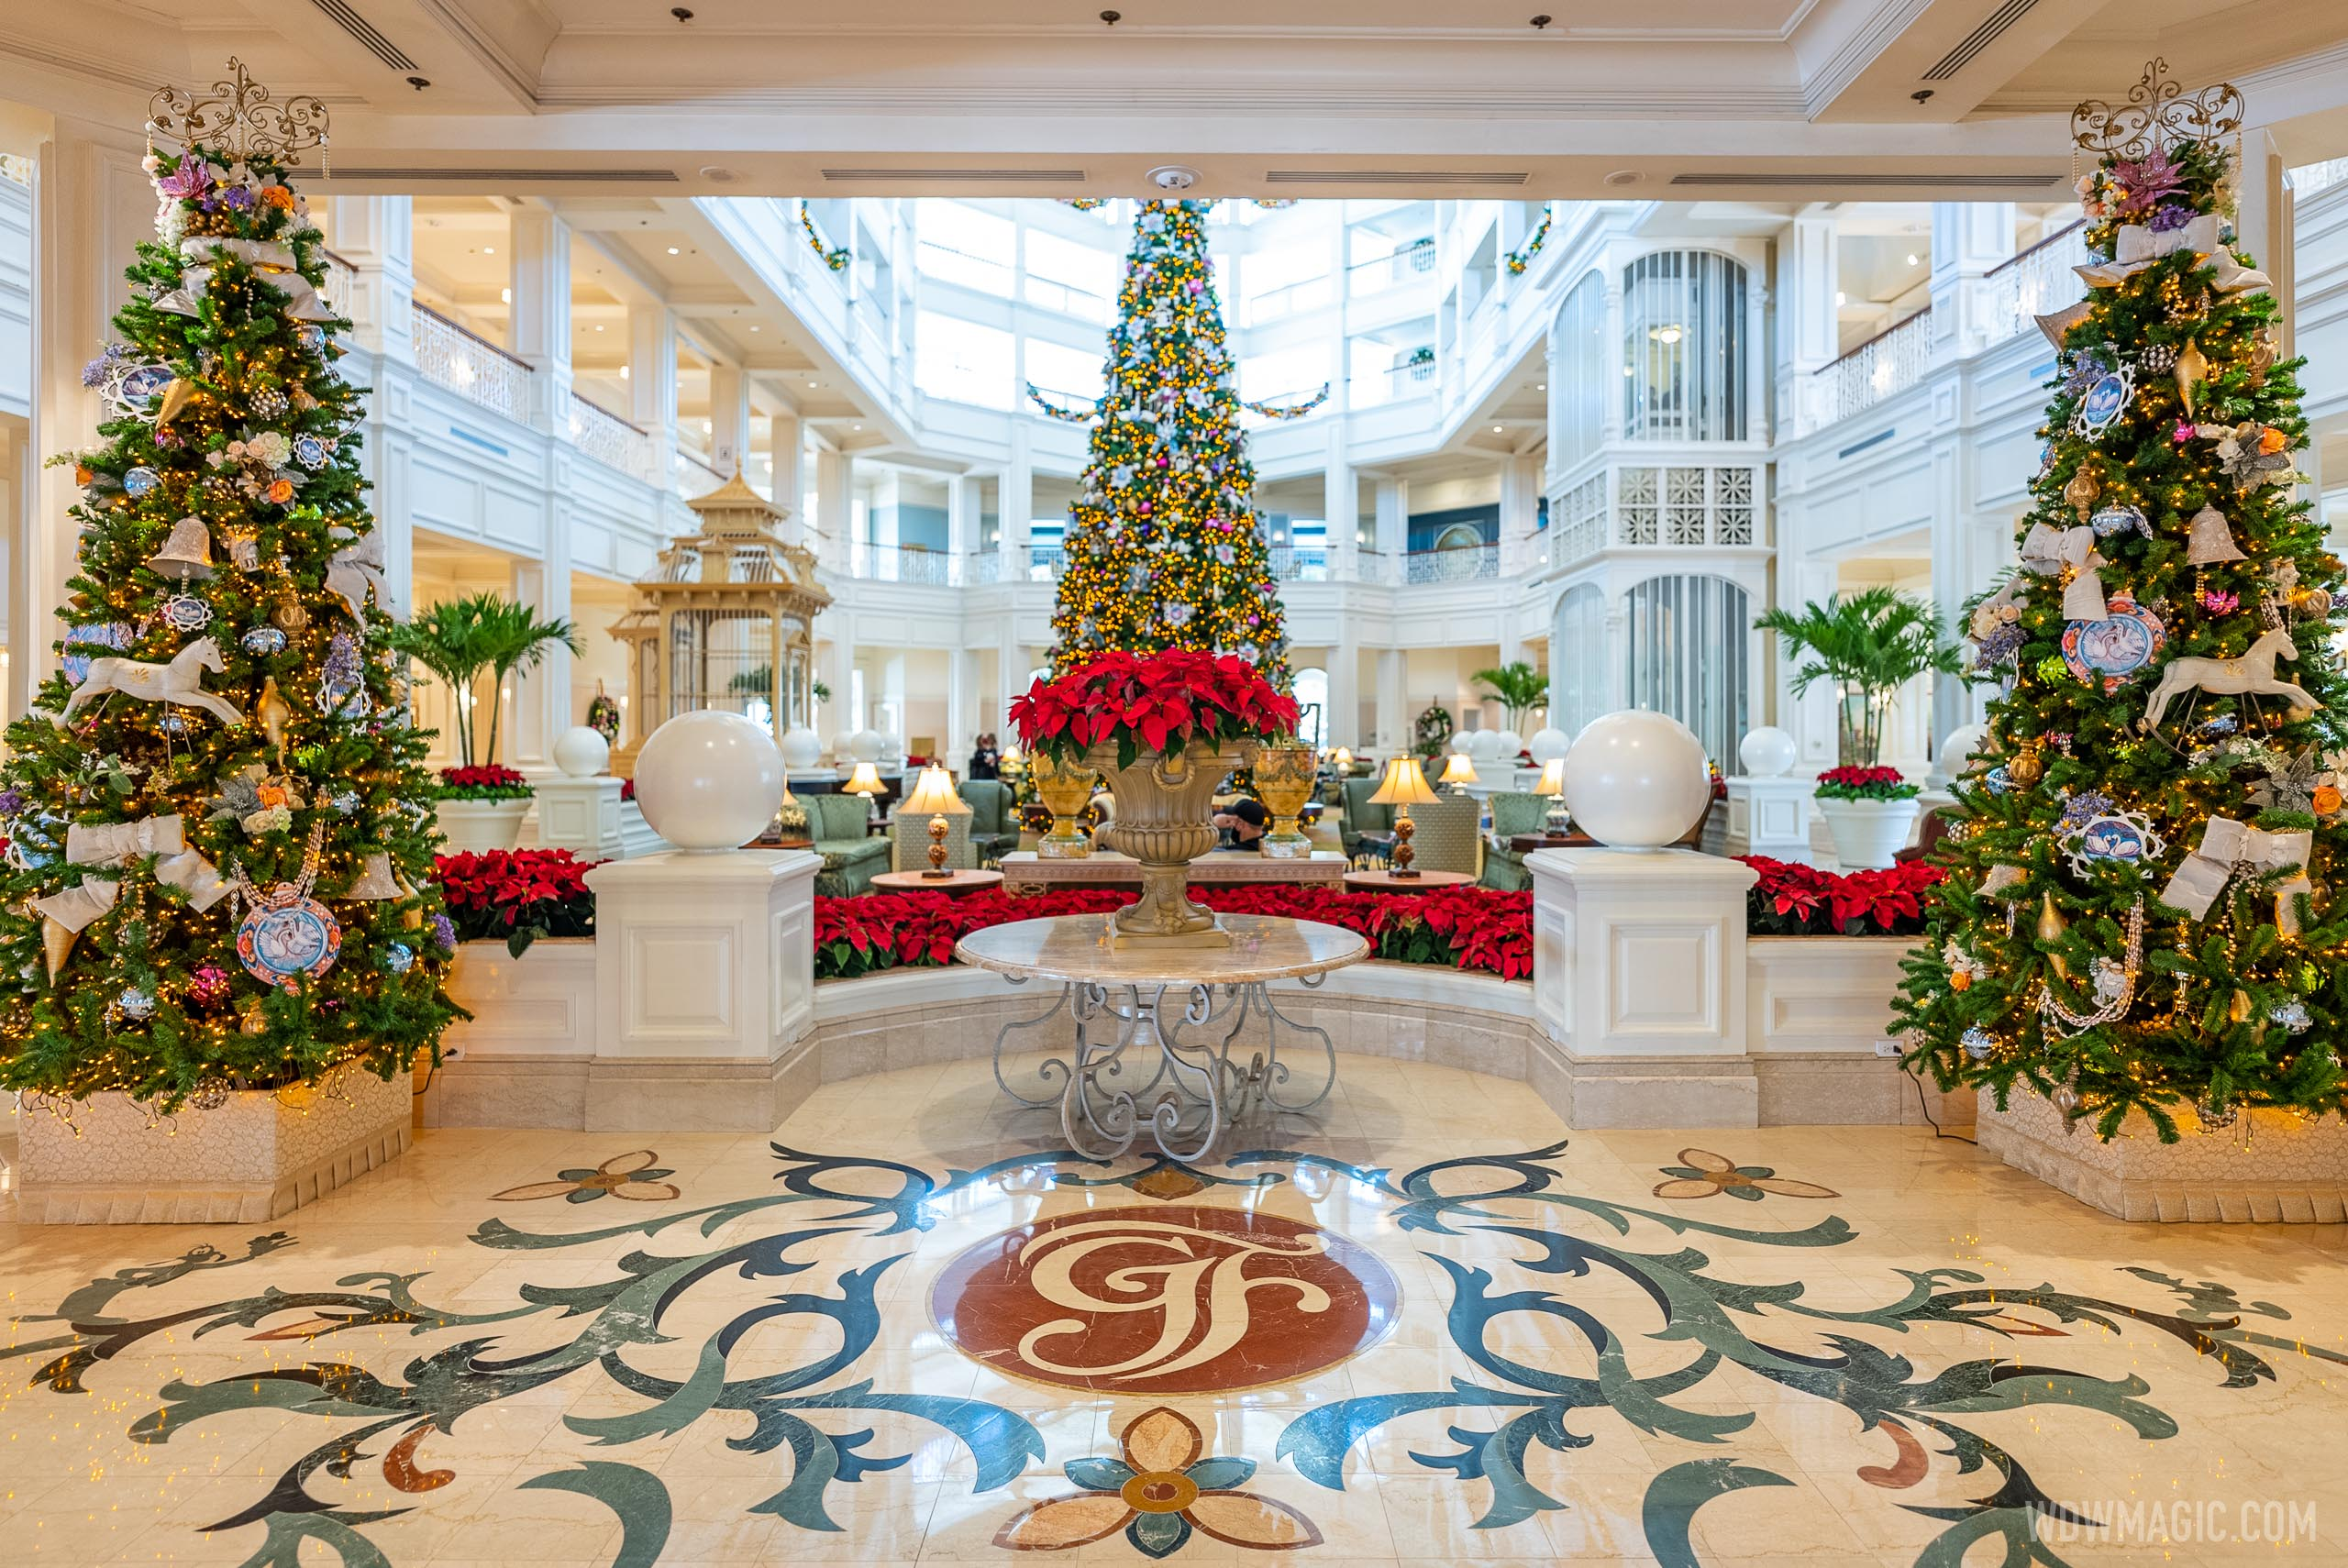 2020 Grand Floridian Resort Christmas decorations